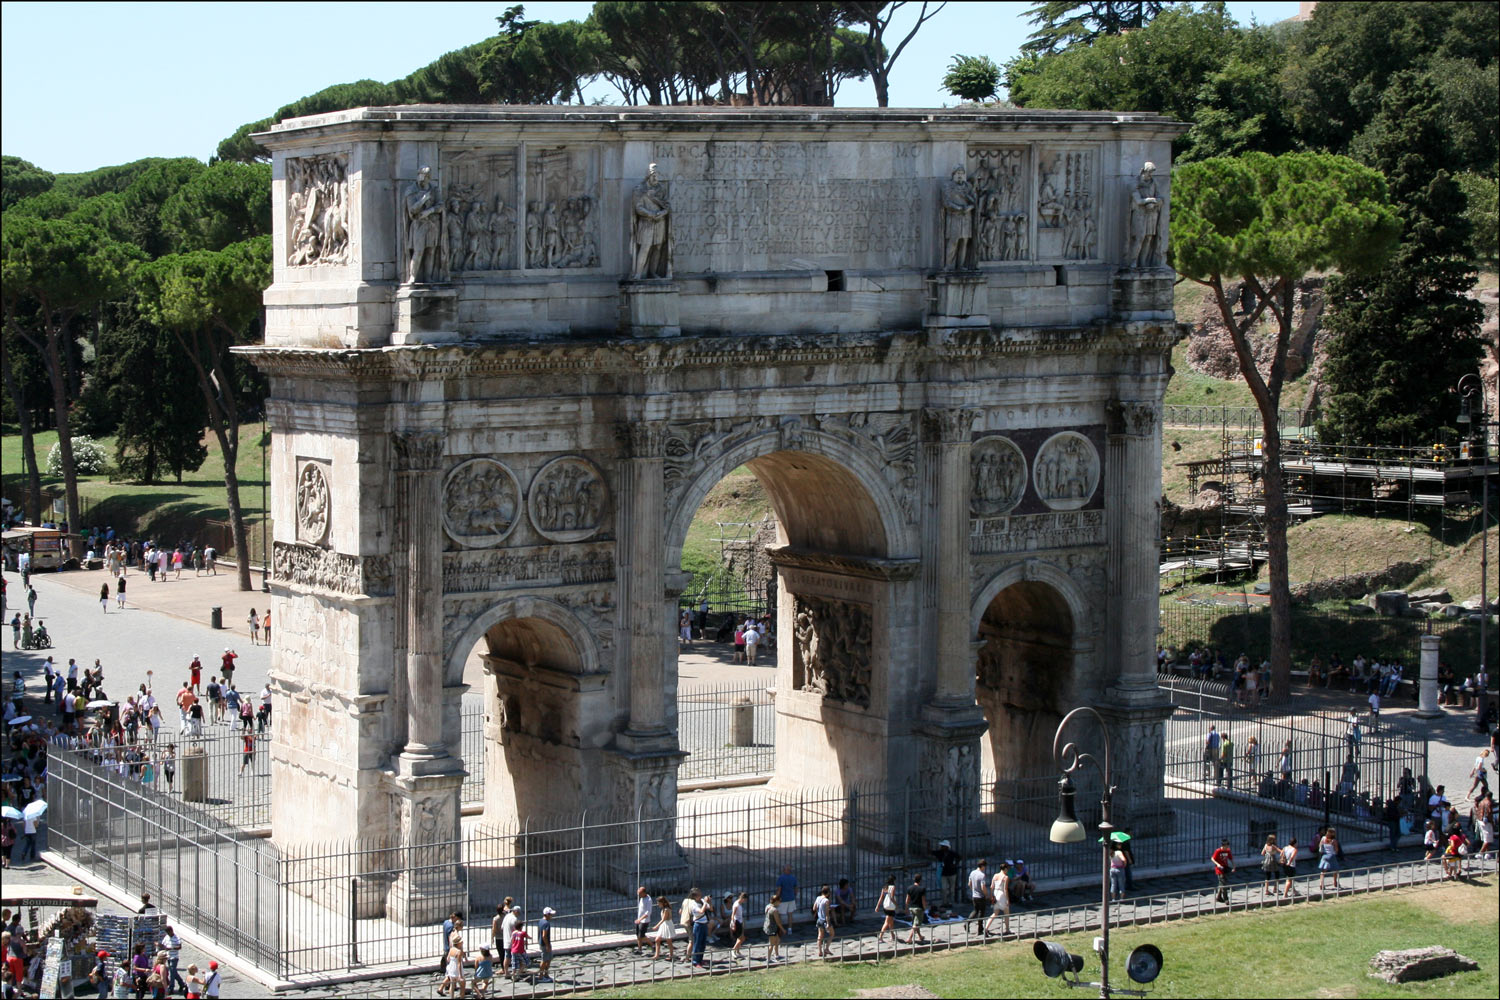 North Face of the Arch of Constantine